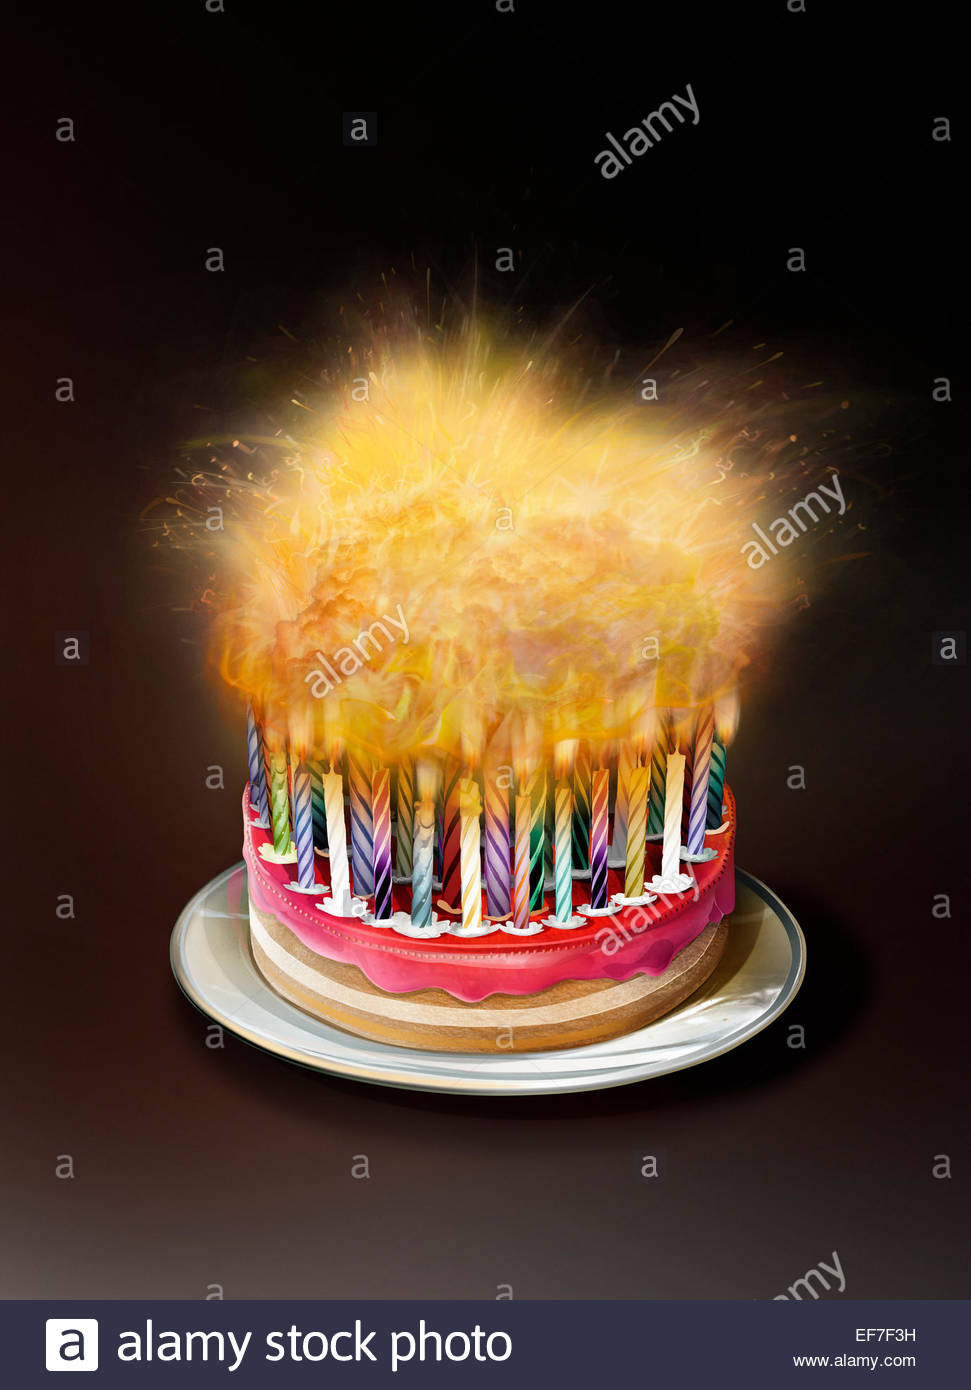 23+ Beautiful Image of Birthday Cake With Lots Of Candles